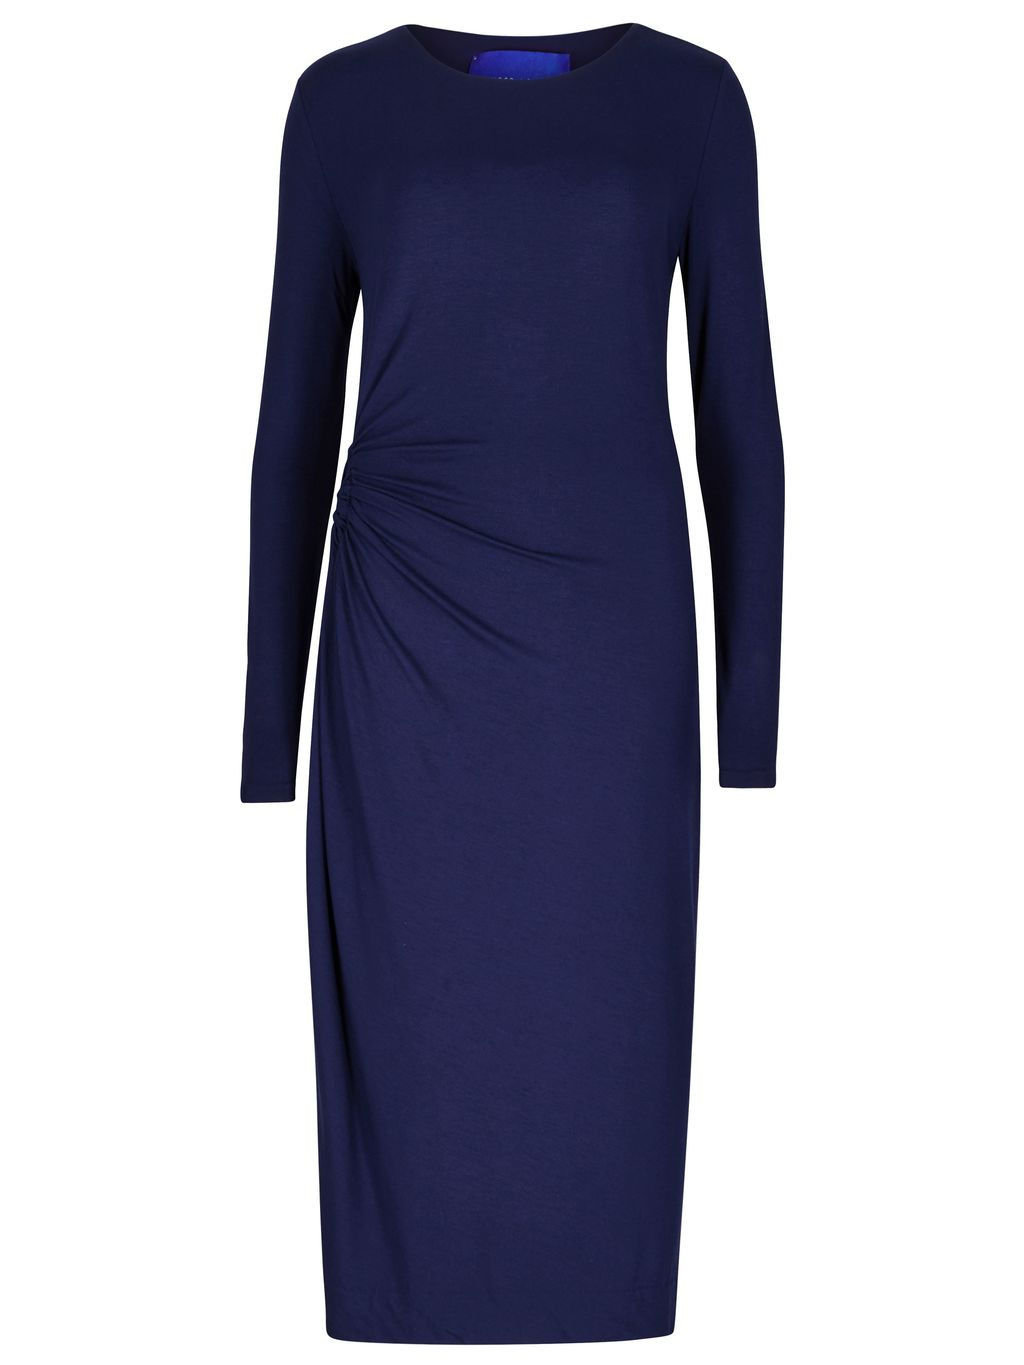 Rose Jersey Dress, Navy - style: shift; neckline: round neck; pattern: plain; predominant colour: navy; occasions: evening; length: just above the knee; fit: body skimming; fibres: viscose/rayon - stretch; sleeve length: long sleeve; sleeve style: standard; texture group: crepes; pattern type: fabric; season: s/s 2016; wardrobe: event